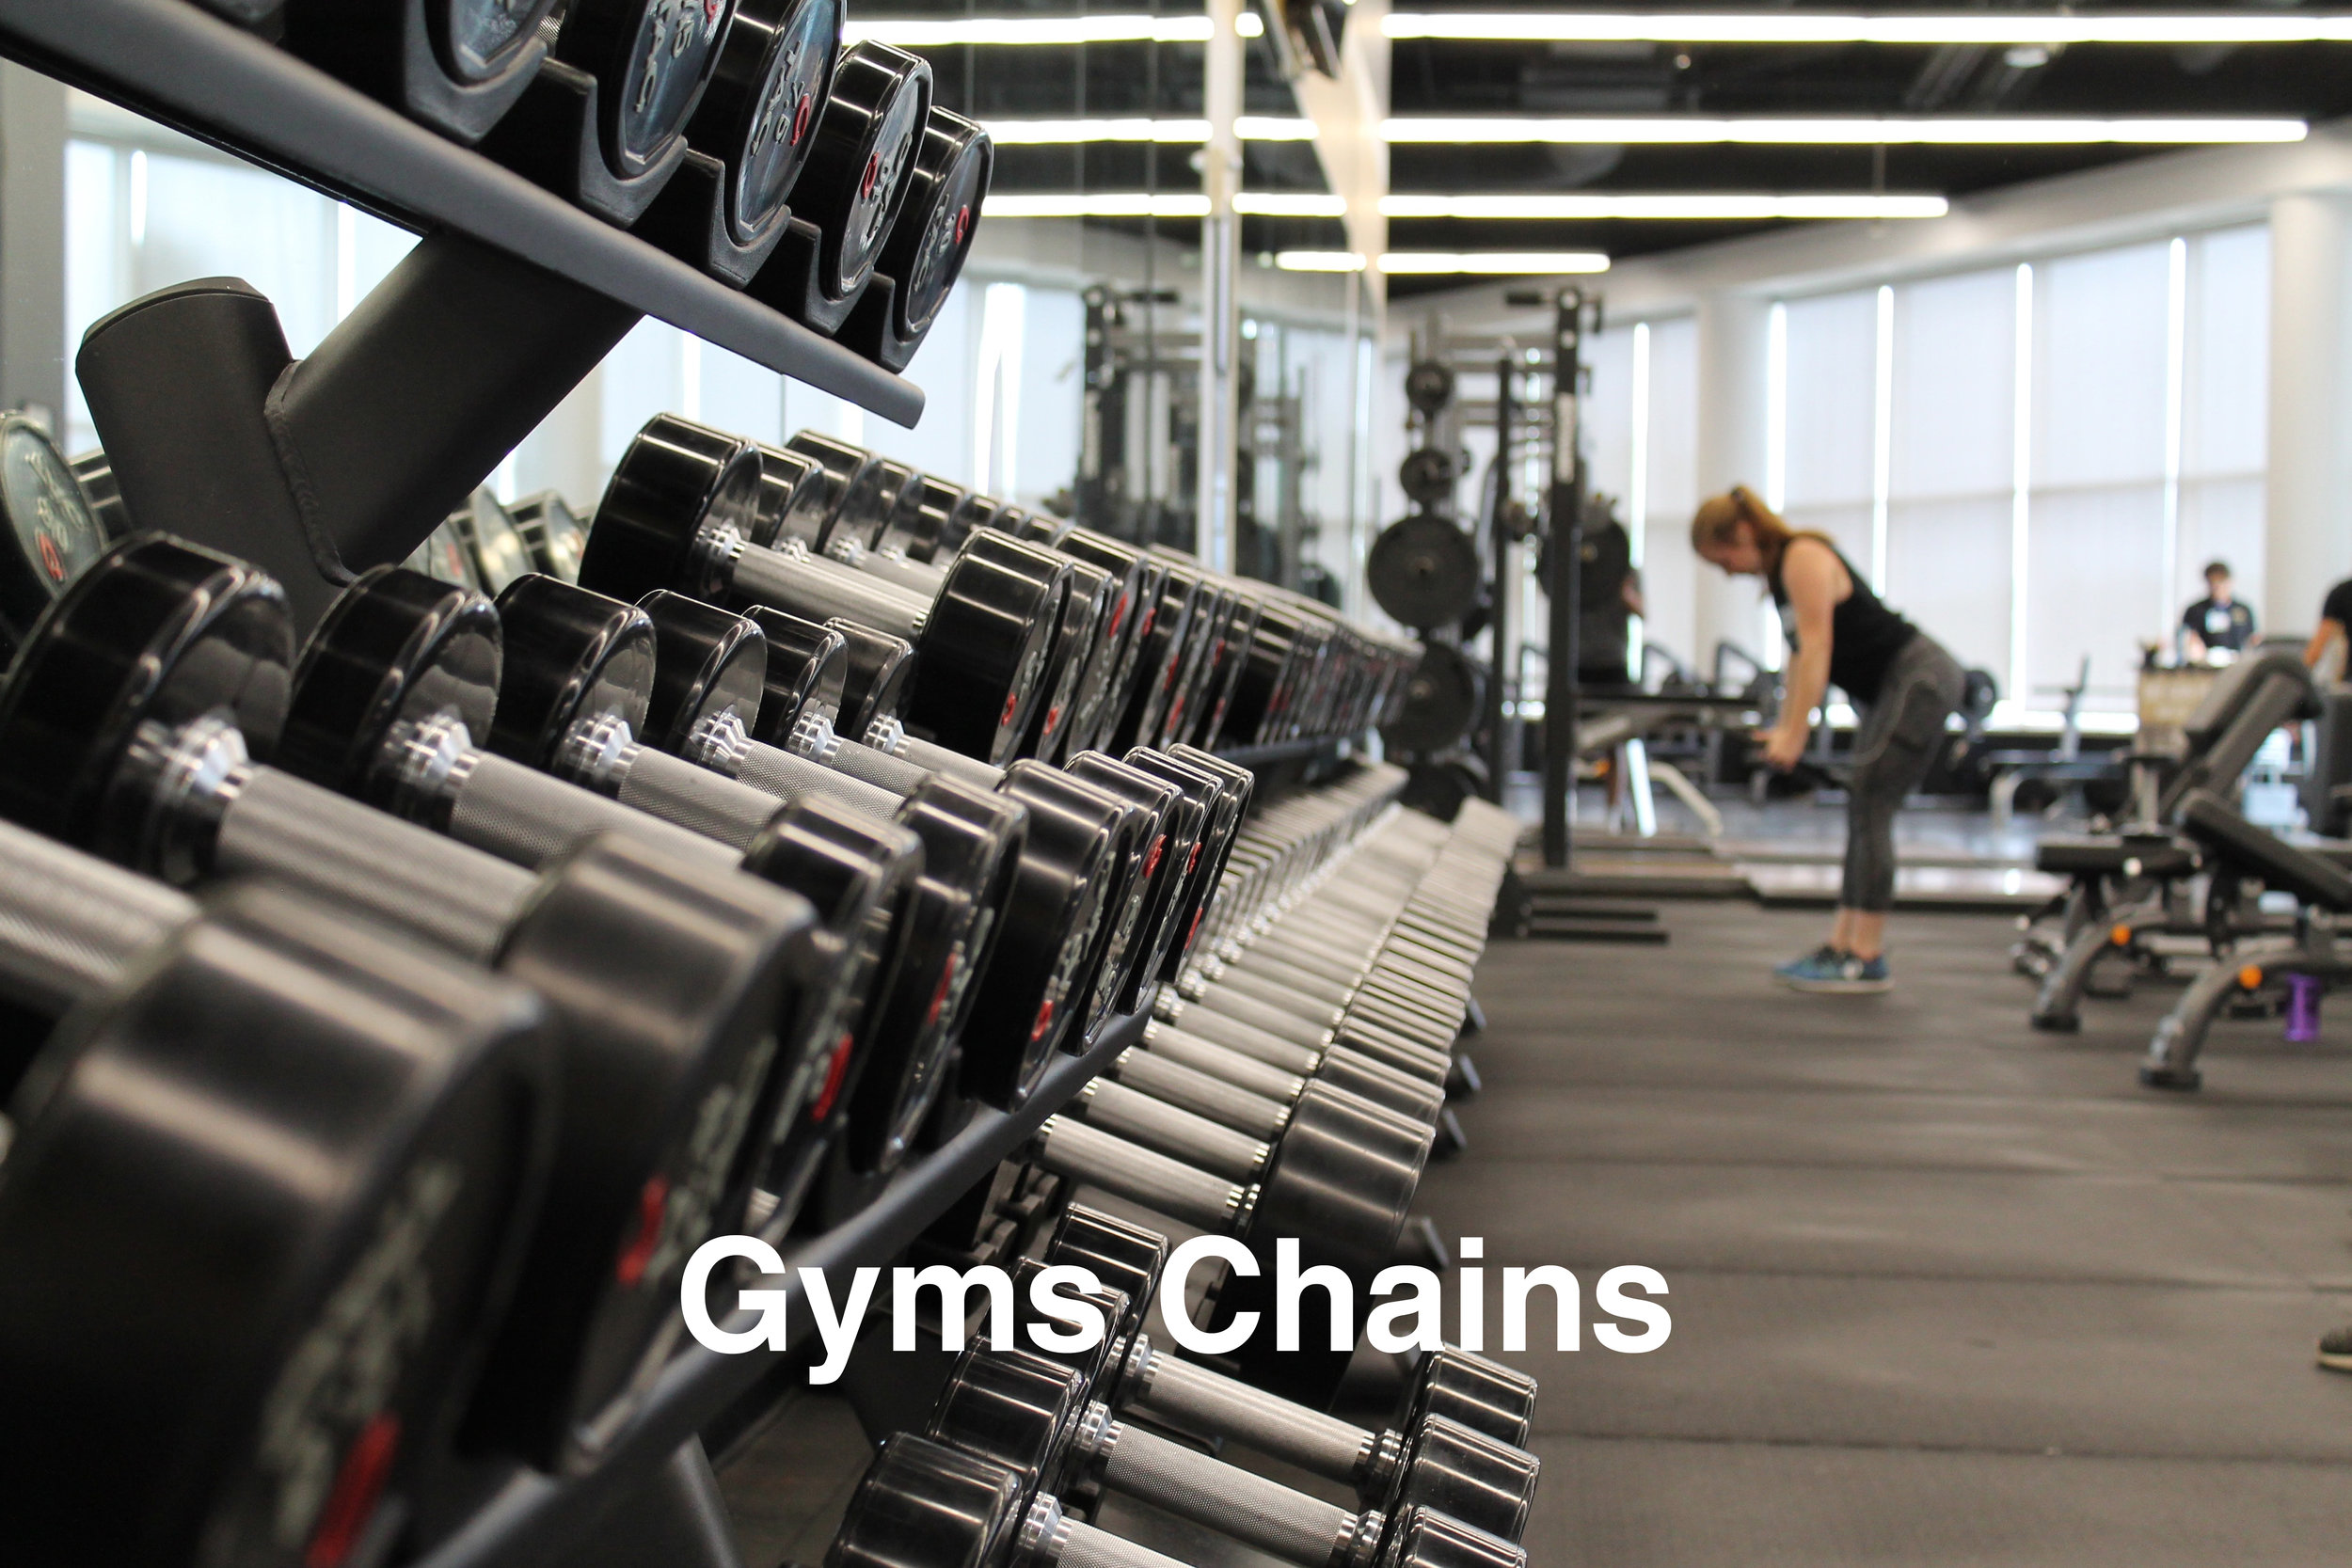 Gym Chains text.jpg